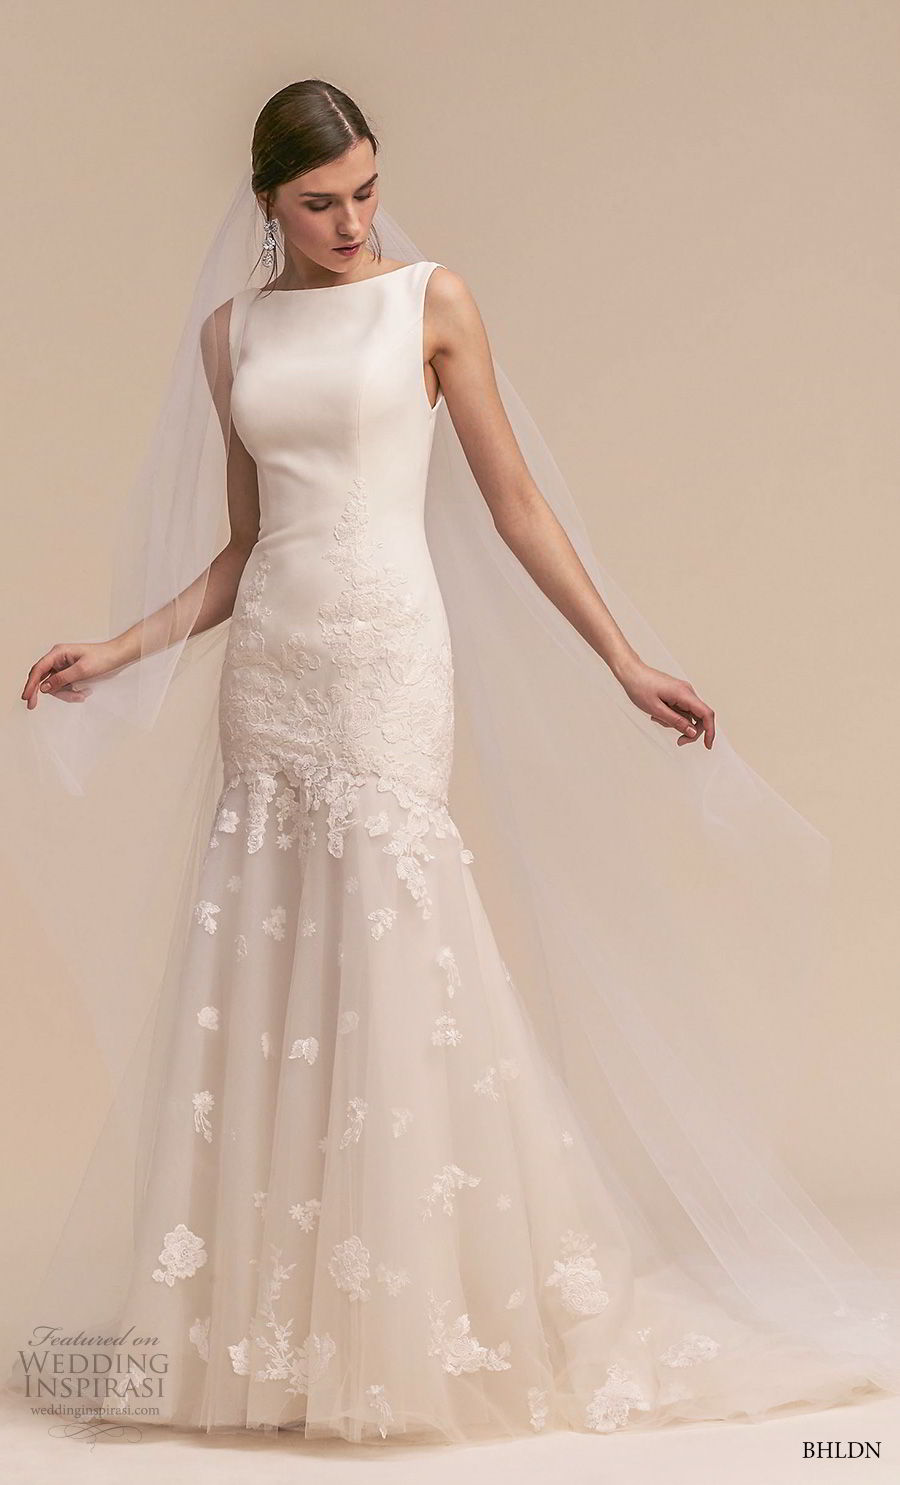 bhldn 2018 whispers bridal sleeveless bateau neck simple clean embellished skirt trumpet wedding dress keyhole back short train (4) mv